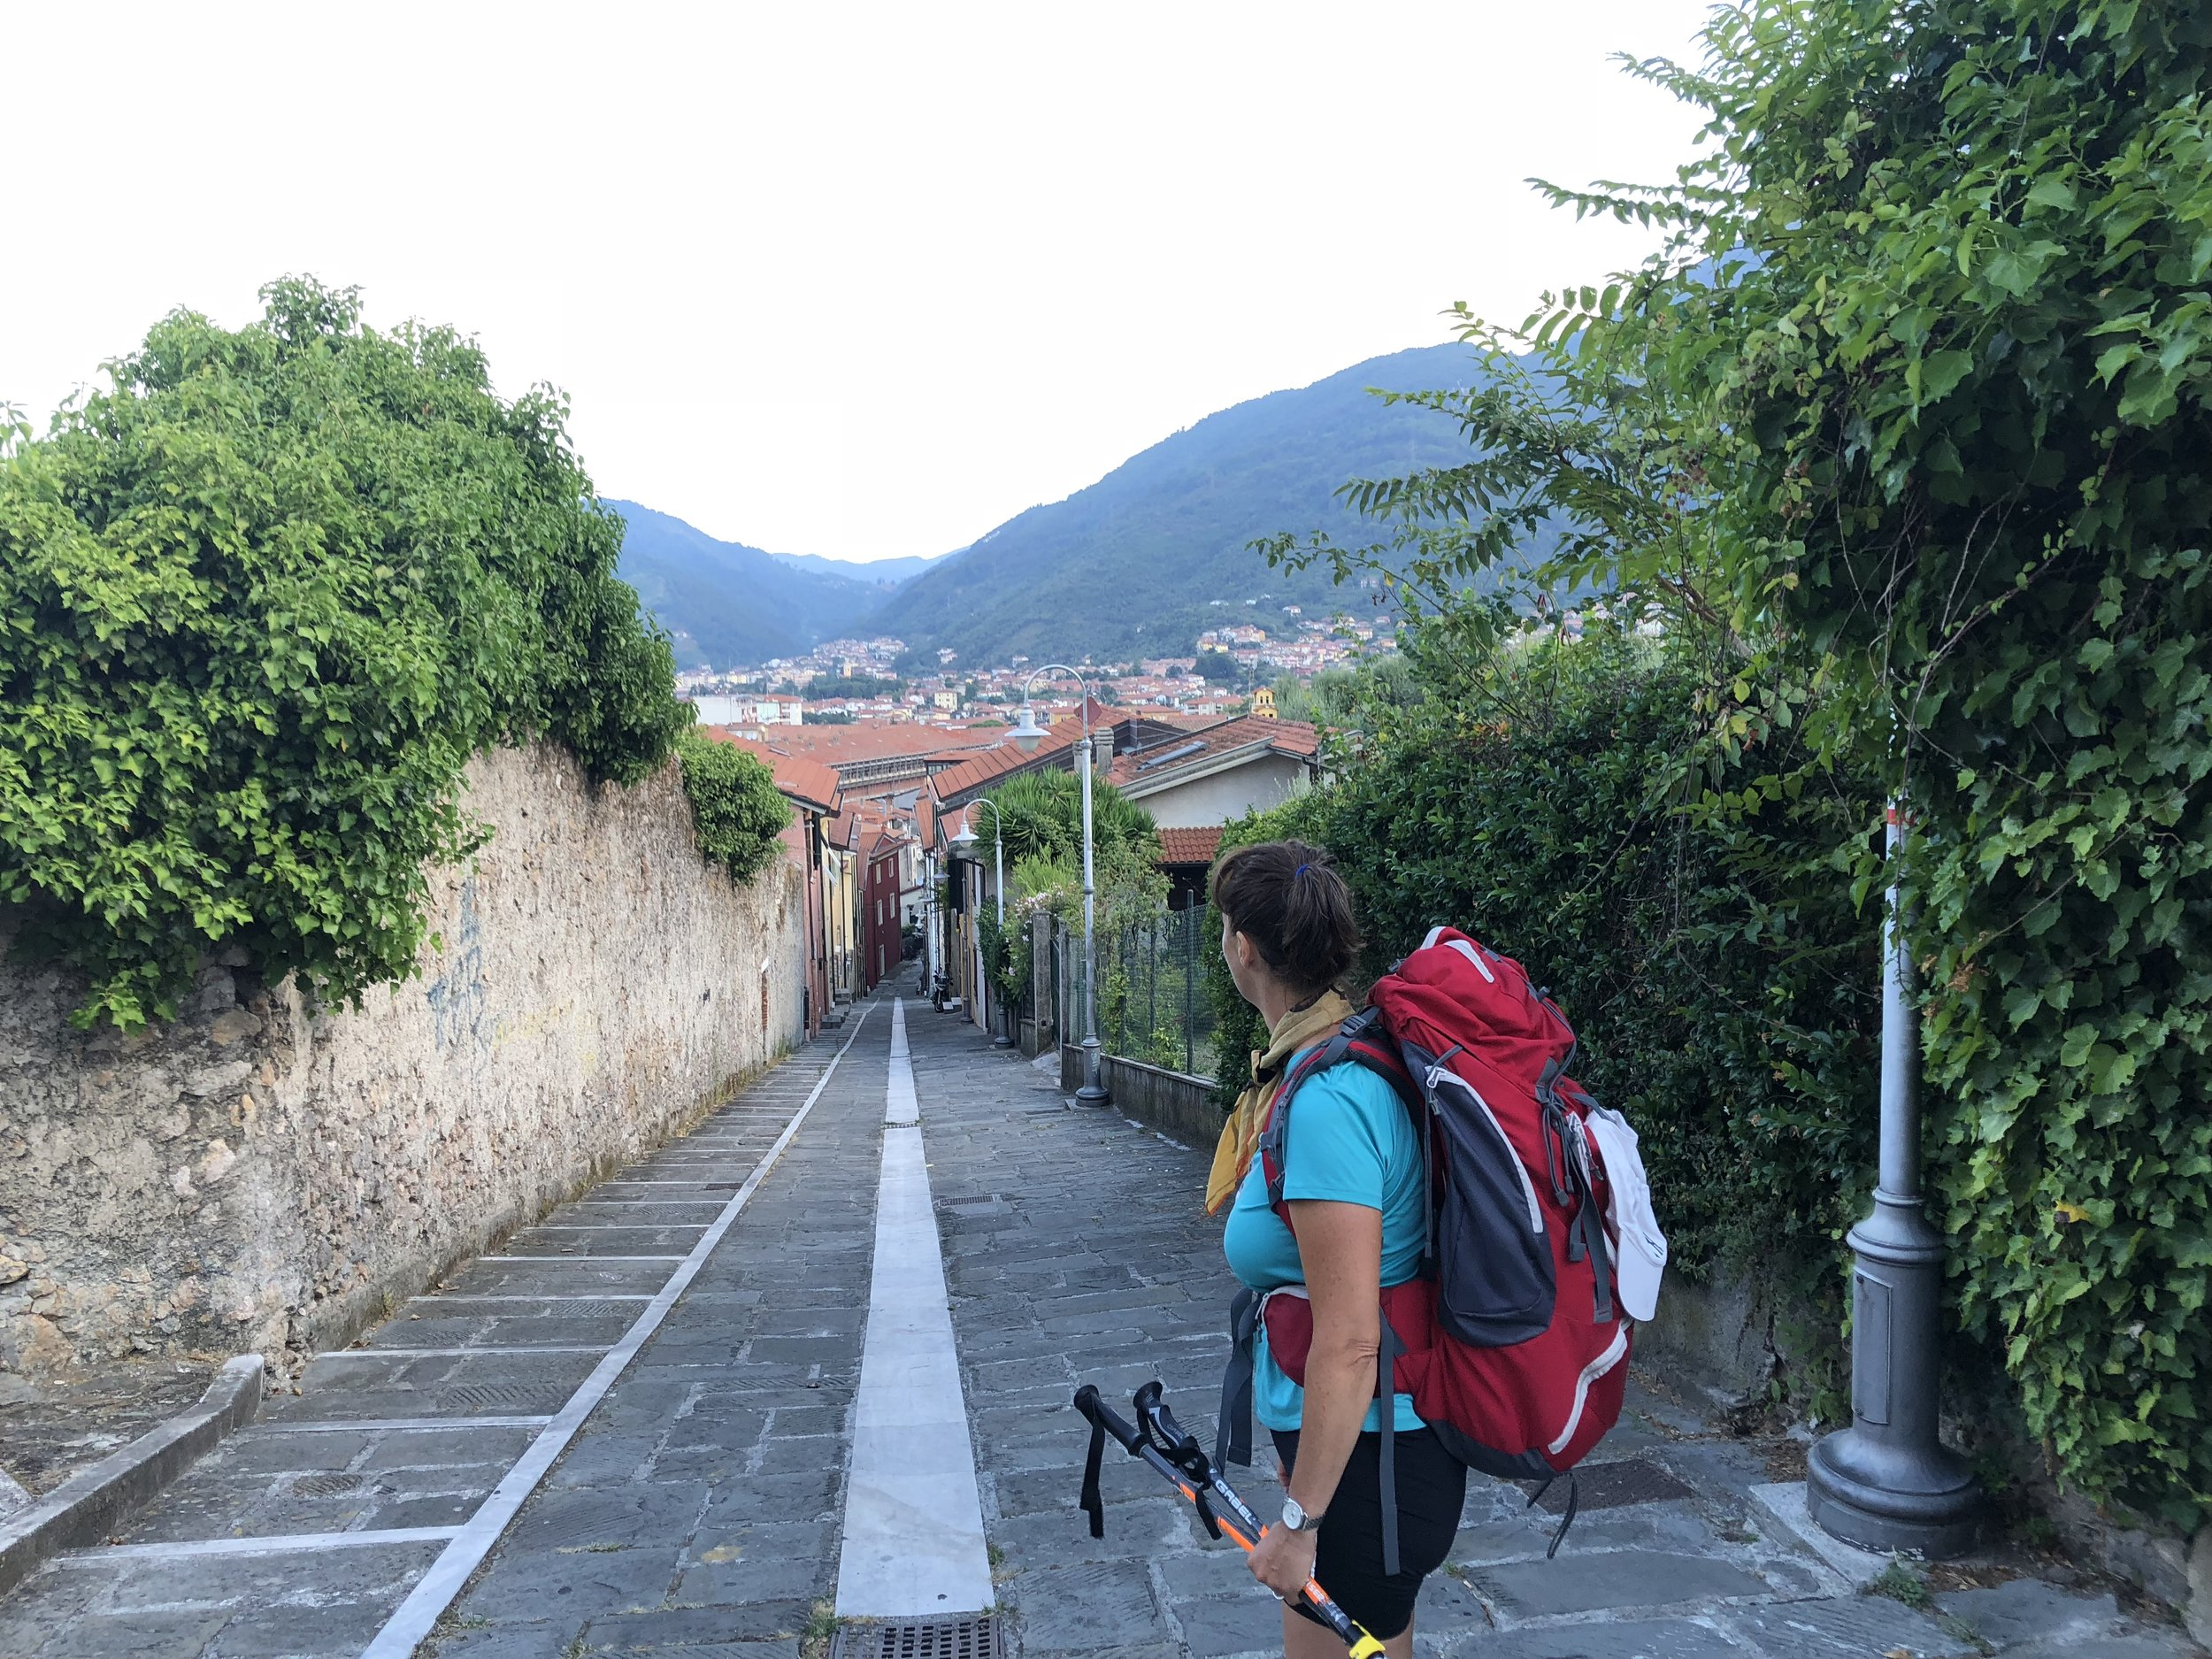 The day was hot and the path was climbing and full of surprises.    A view of the Mediterranean Sea and the first town of the Cinque Terre.